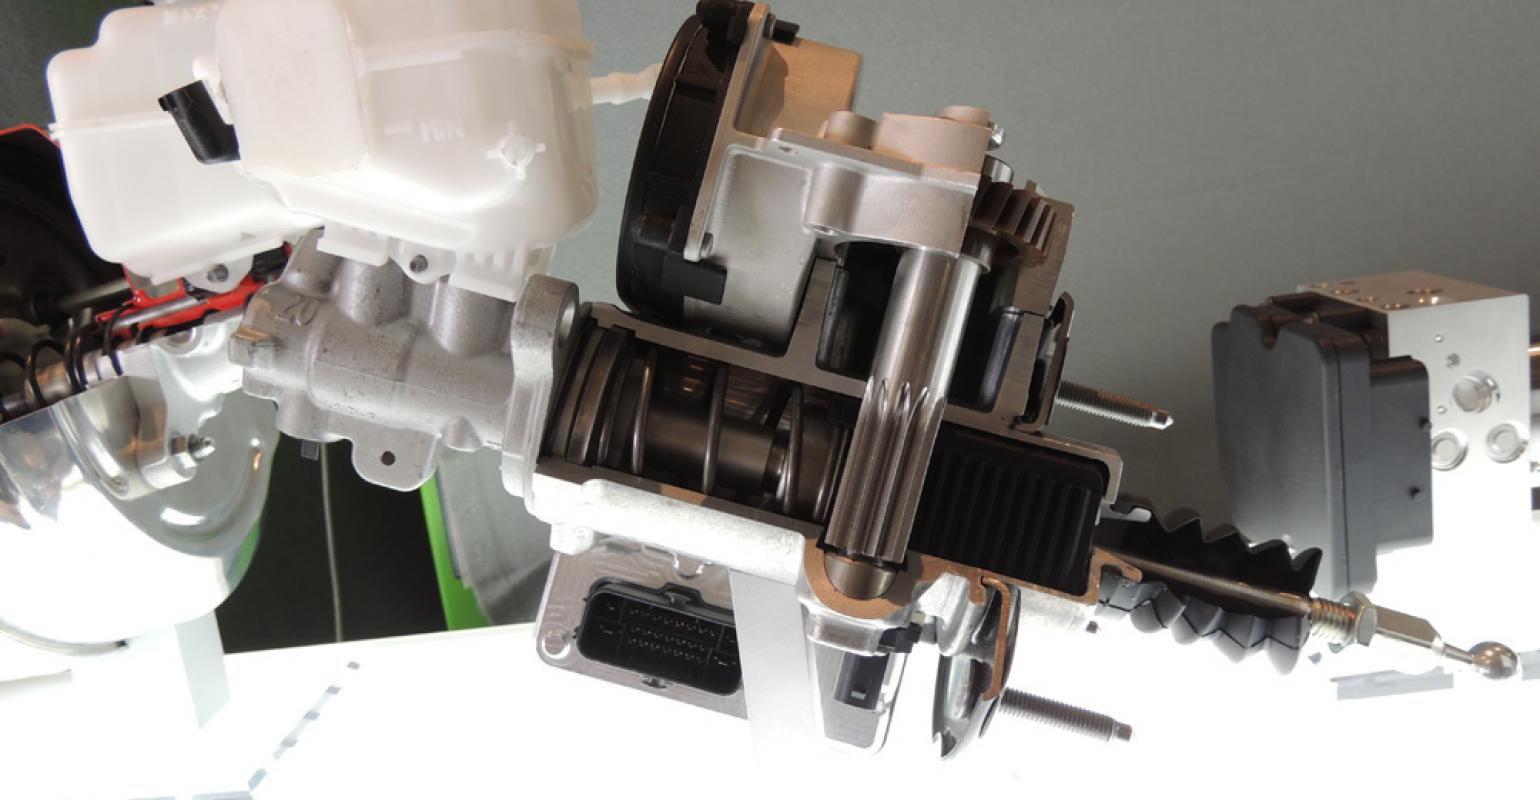 Bosch Rolling Out Vacuum-Free iBooster   WardsAuto